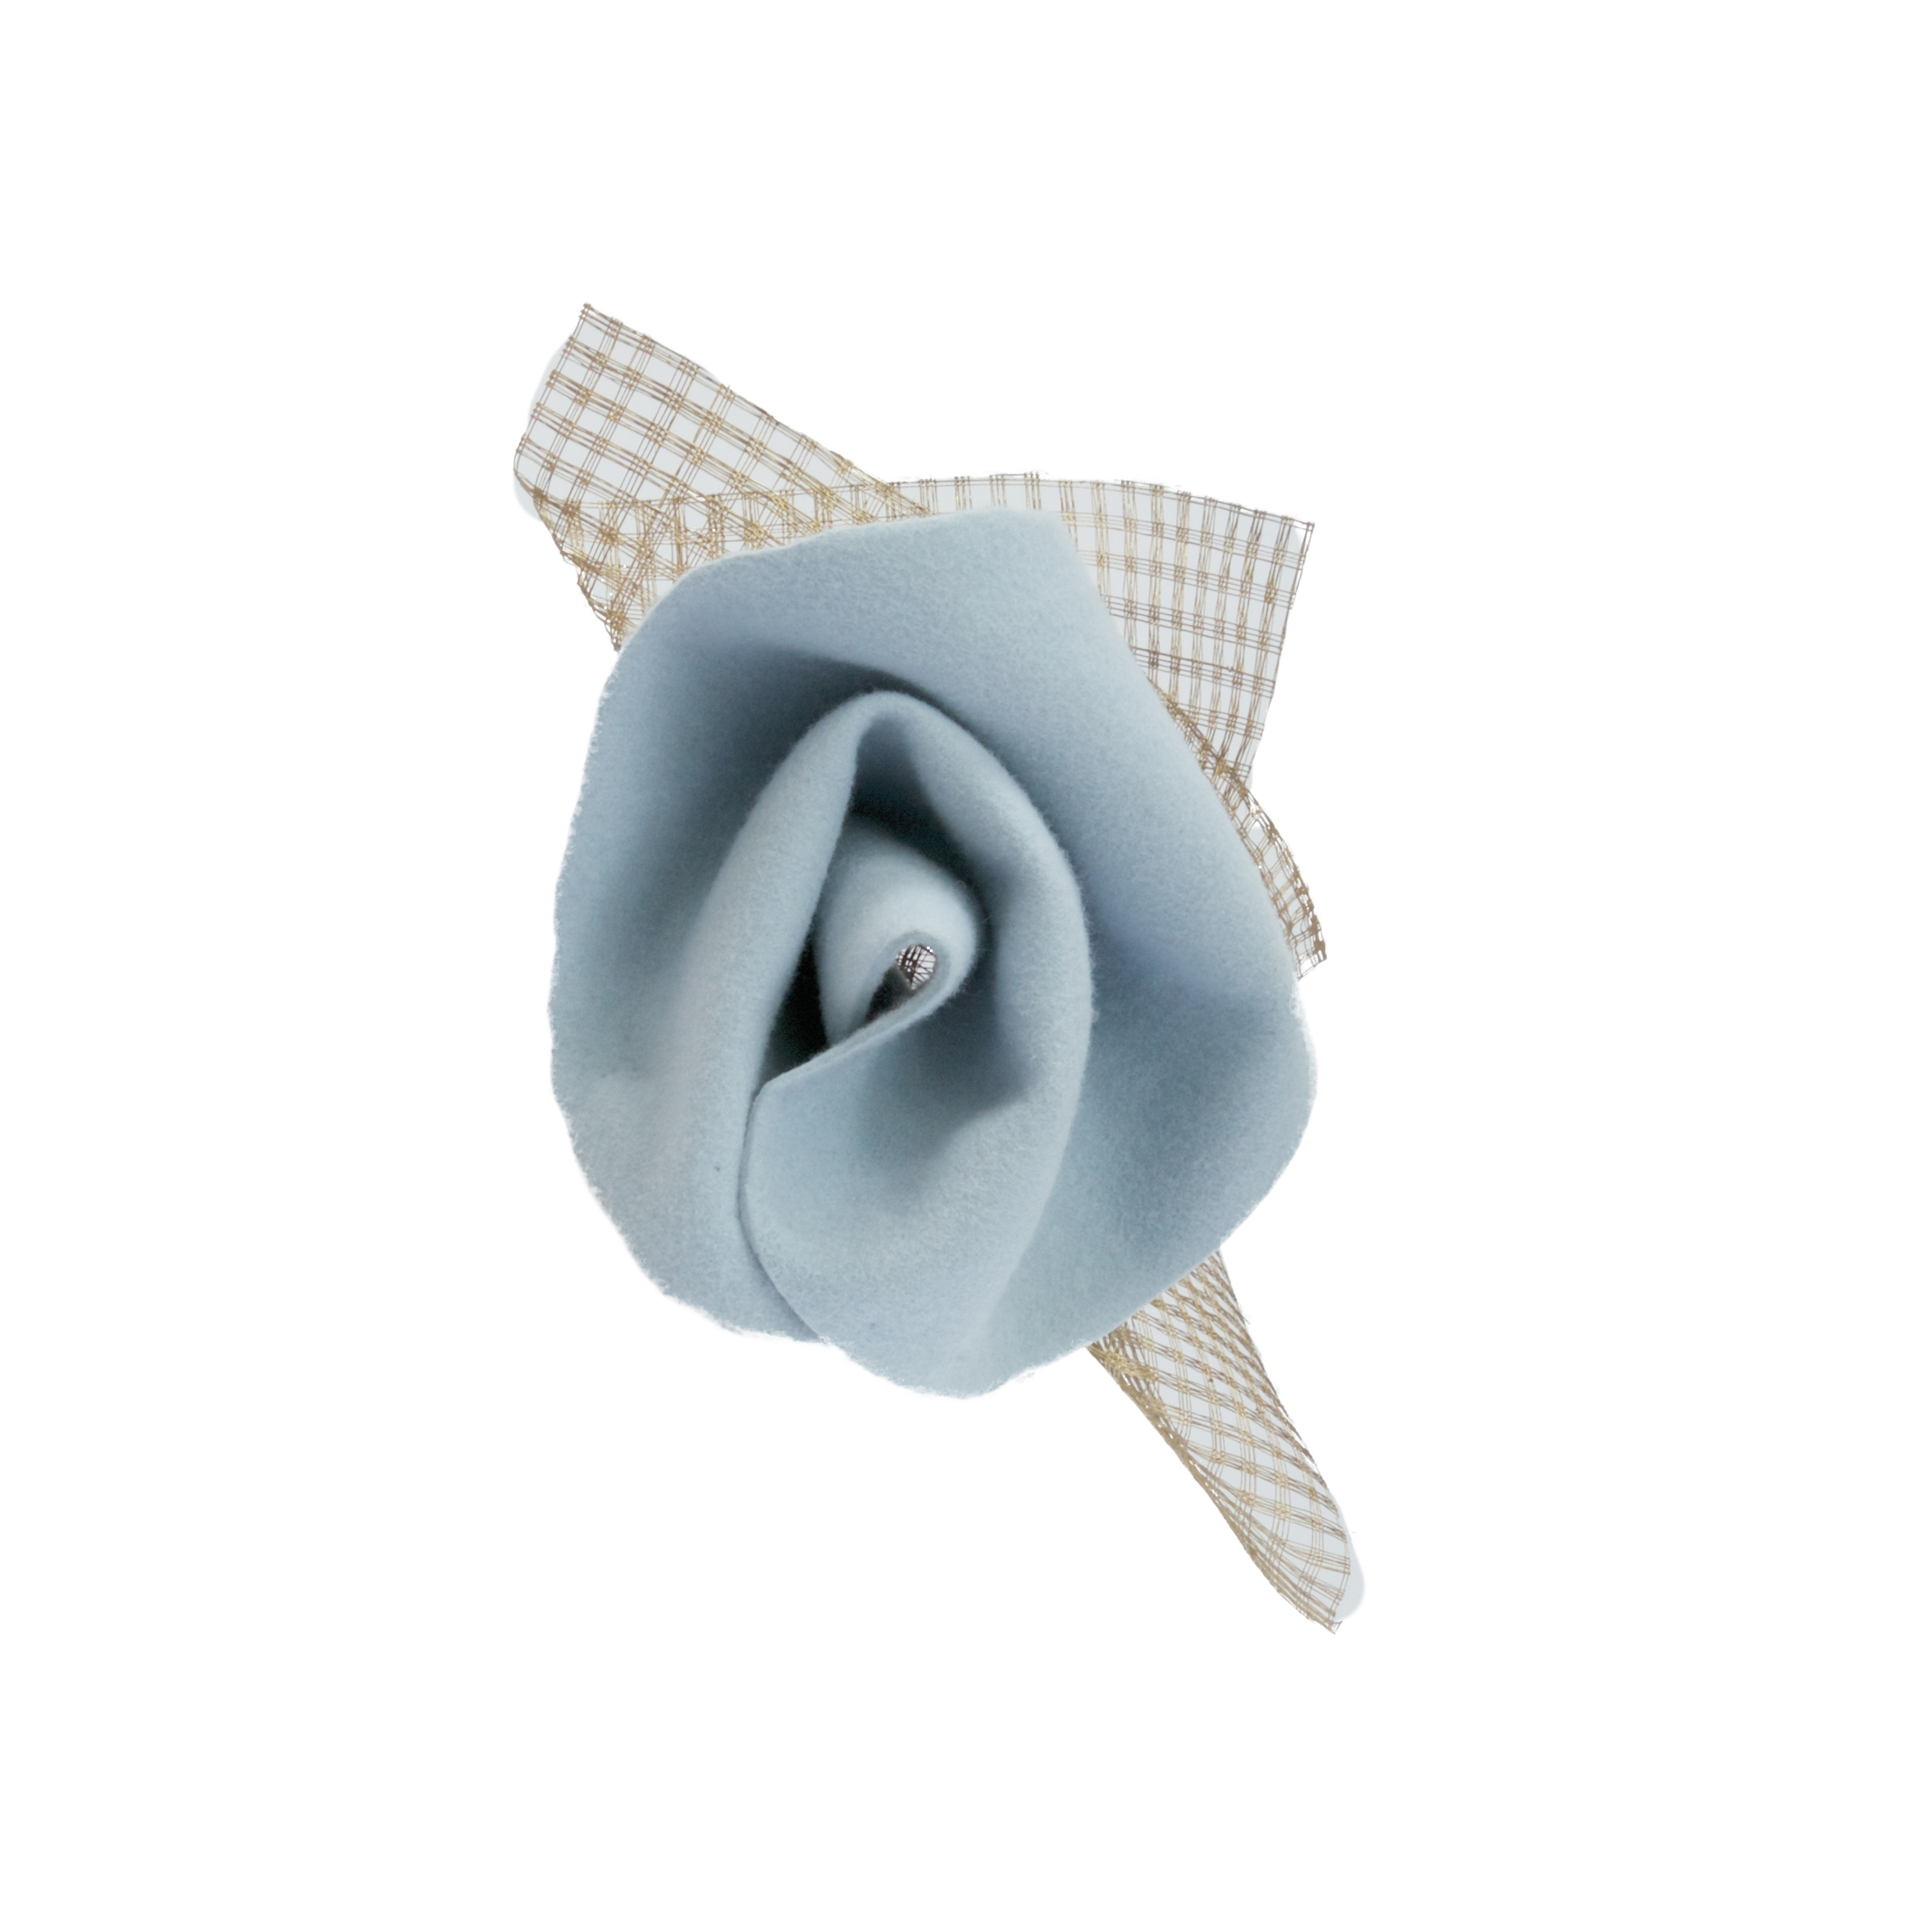 CONCH - £65  Pale blue headpiece with gold mesh, sits on small disk.